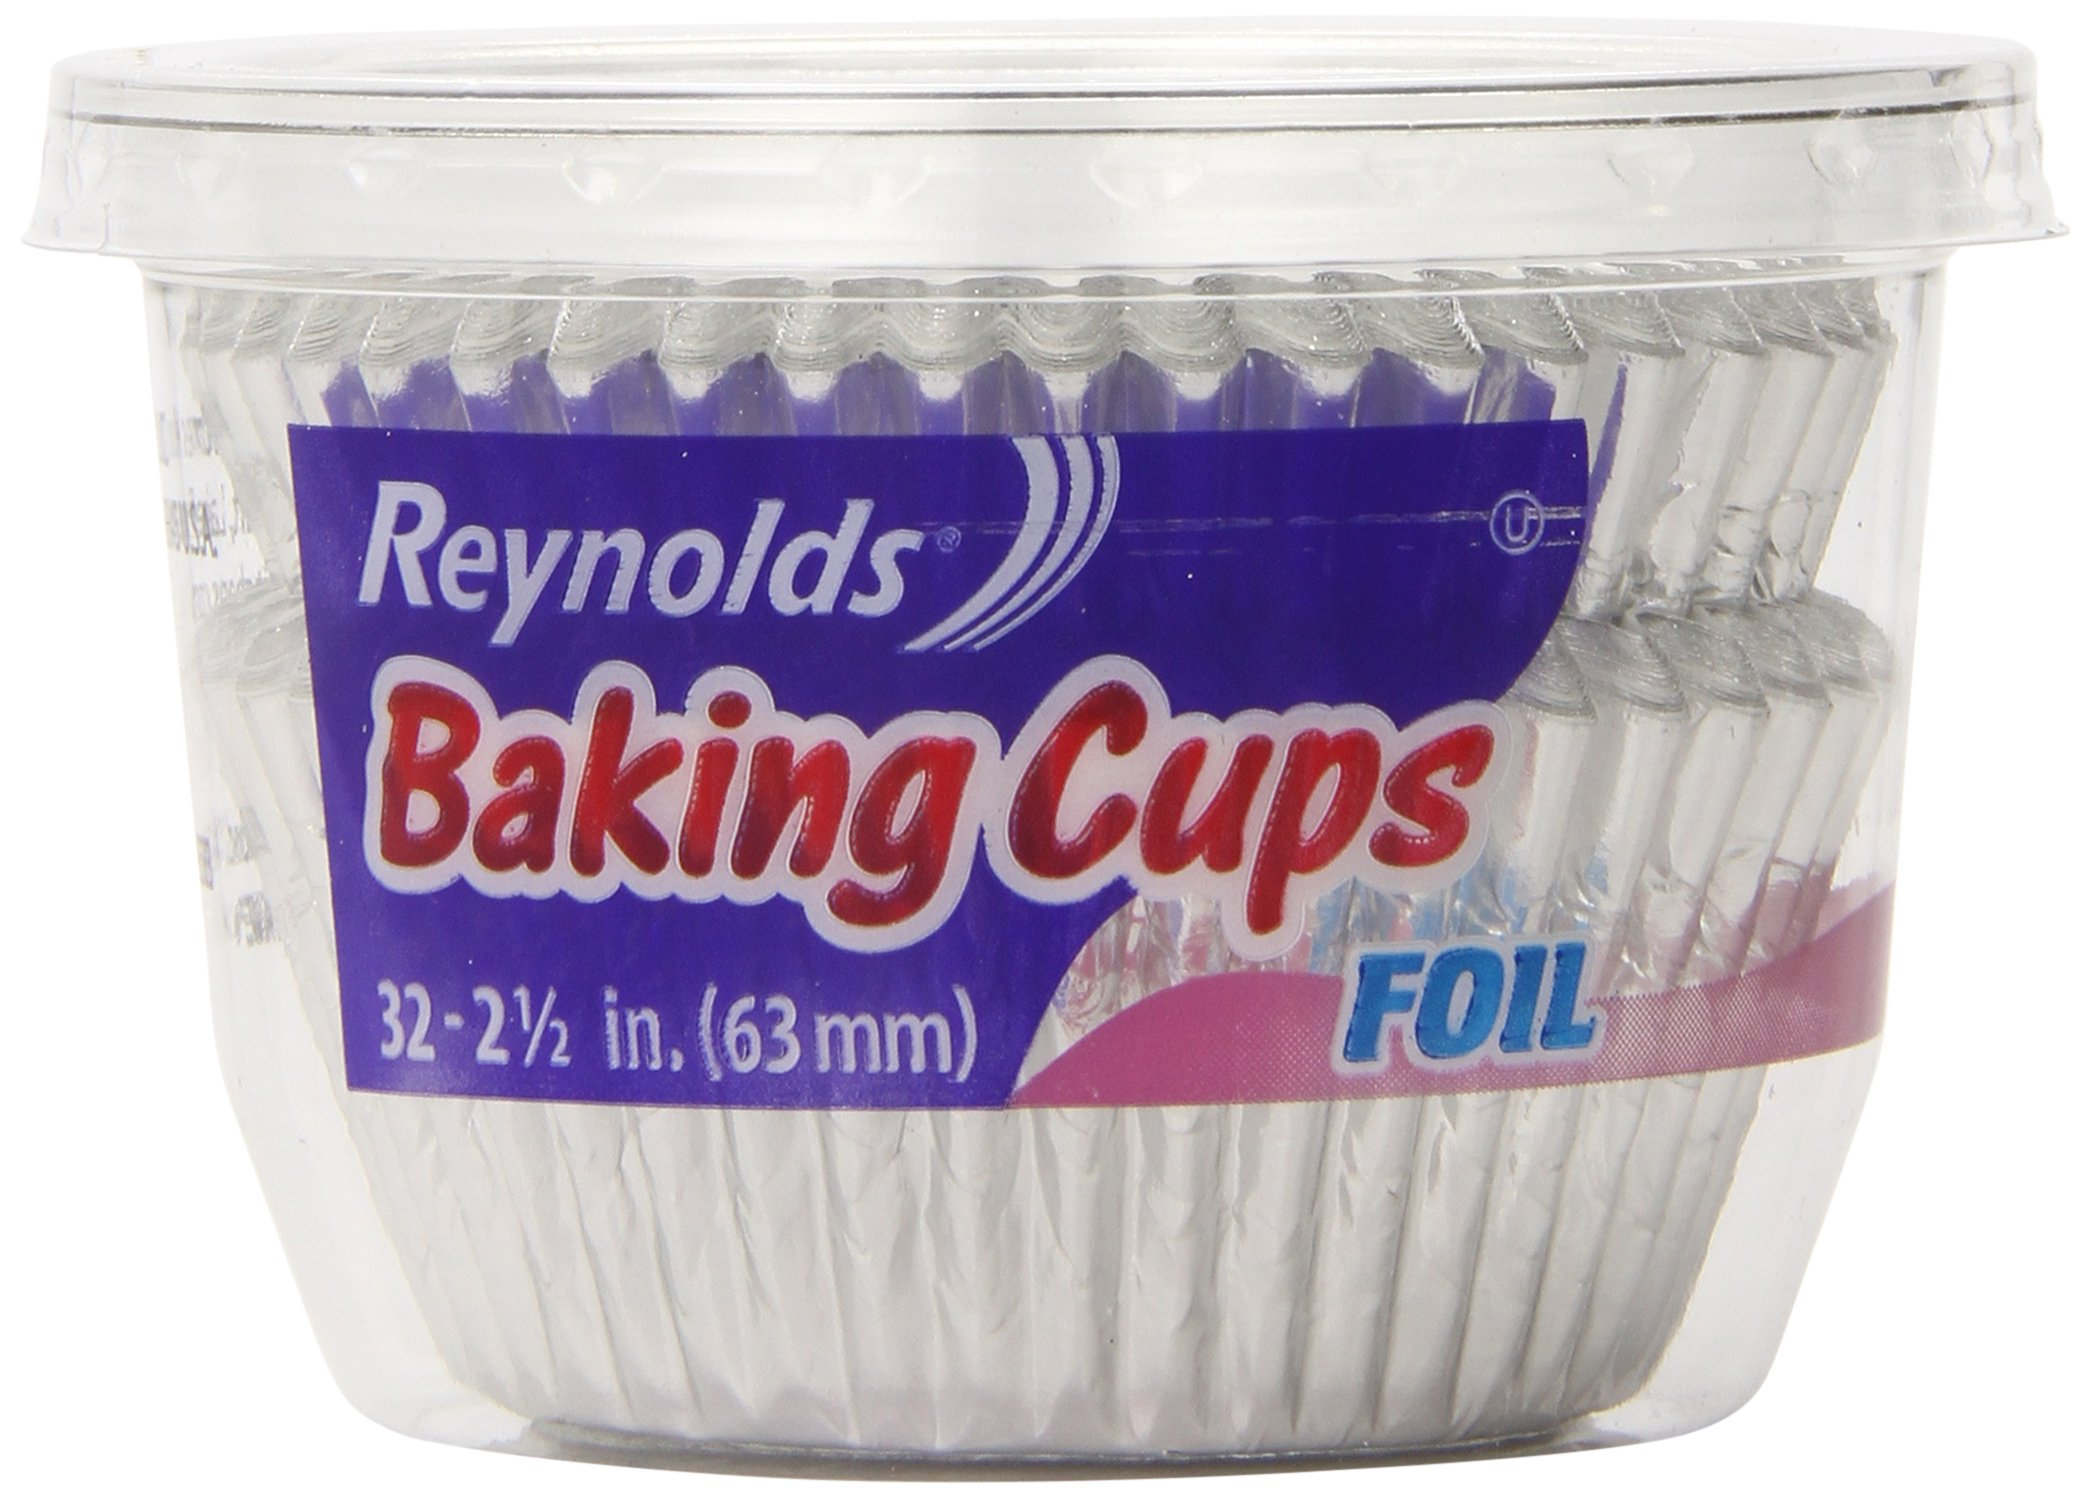 Reynolds Baking Cups, Foil, 32 Count